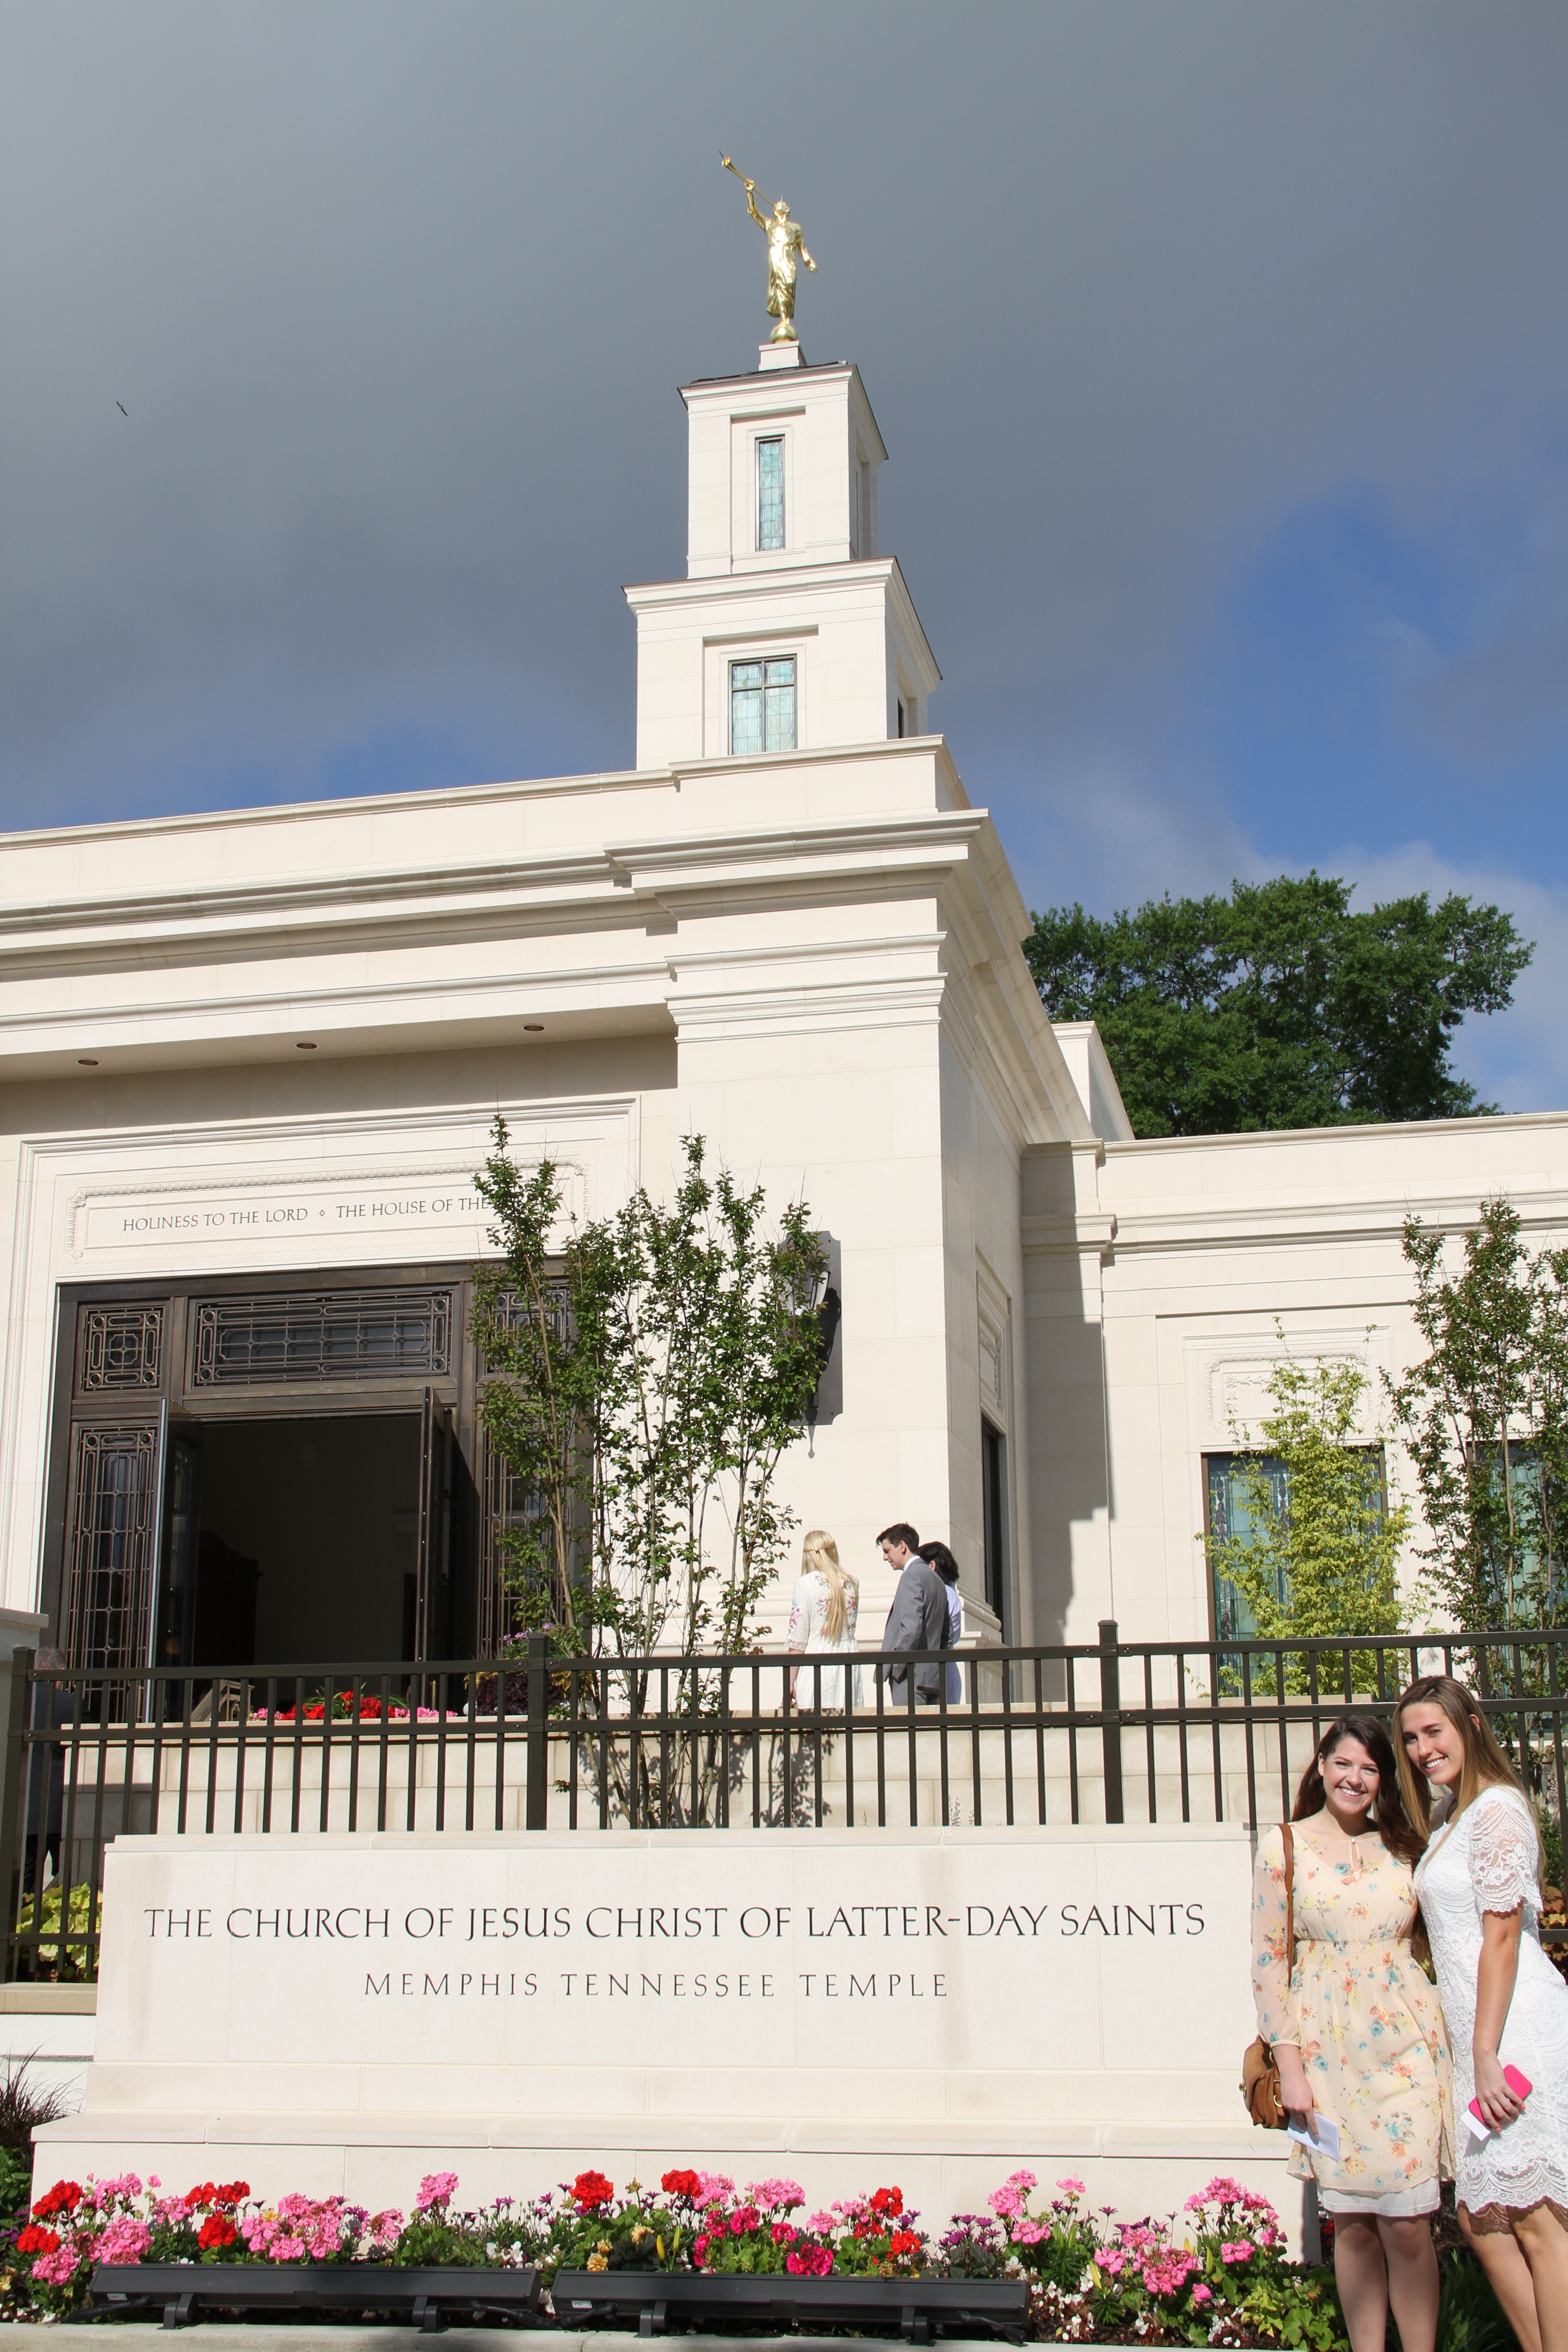 Members pose in front of the Memphis Tennessee Temple prior to the rededication on May 5, 2019.